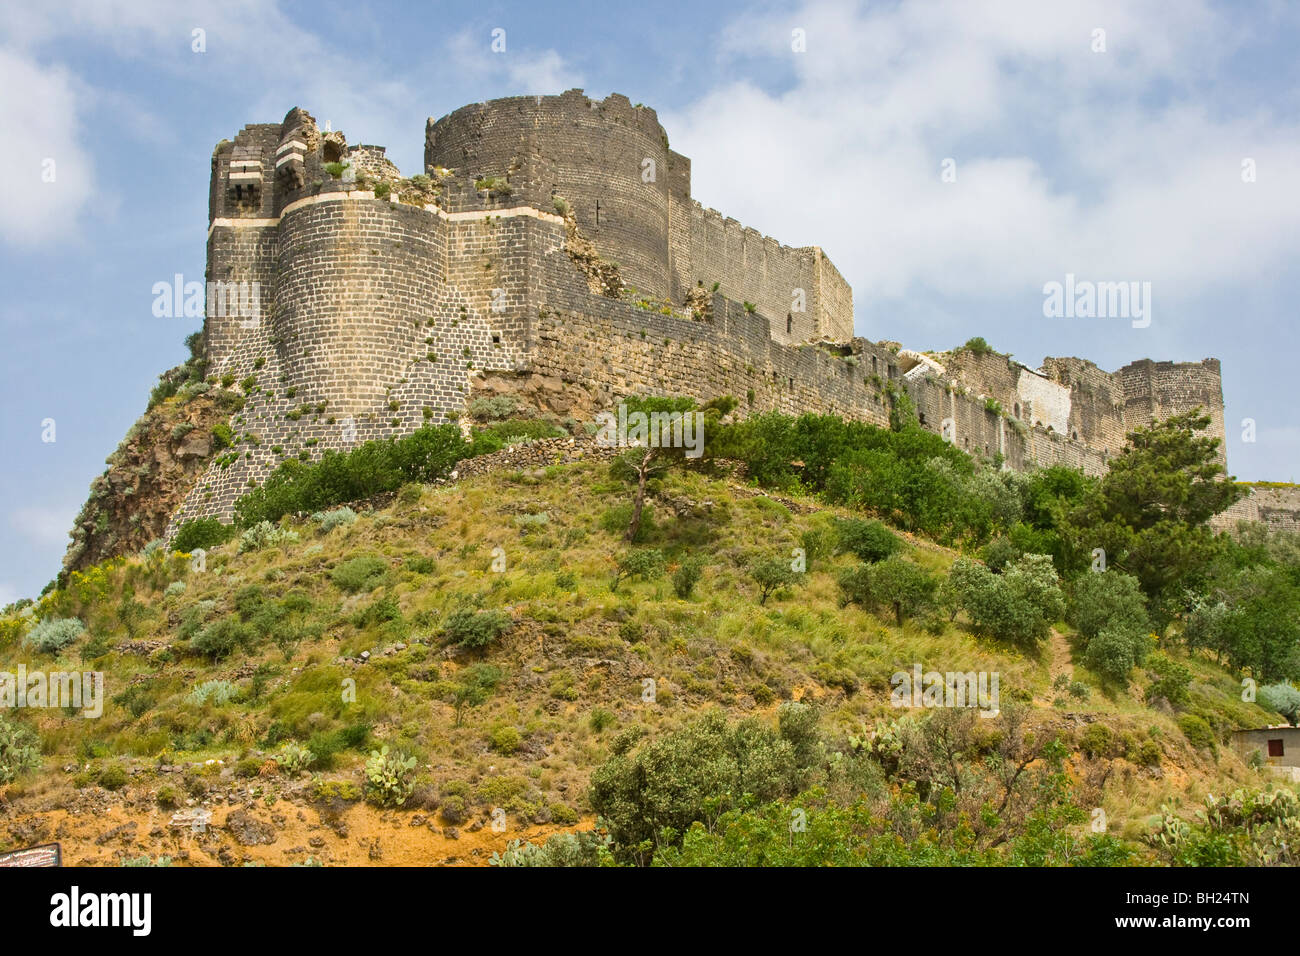 Qalaat Marqab Crusader Castle in Syria - Stock Image